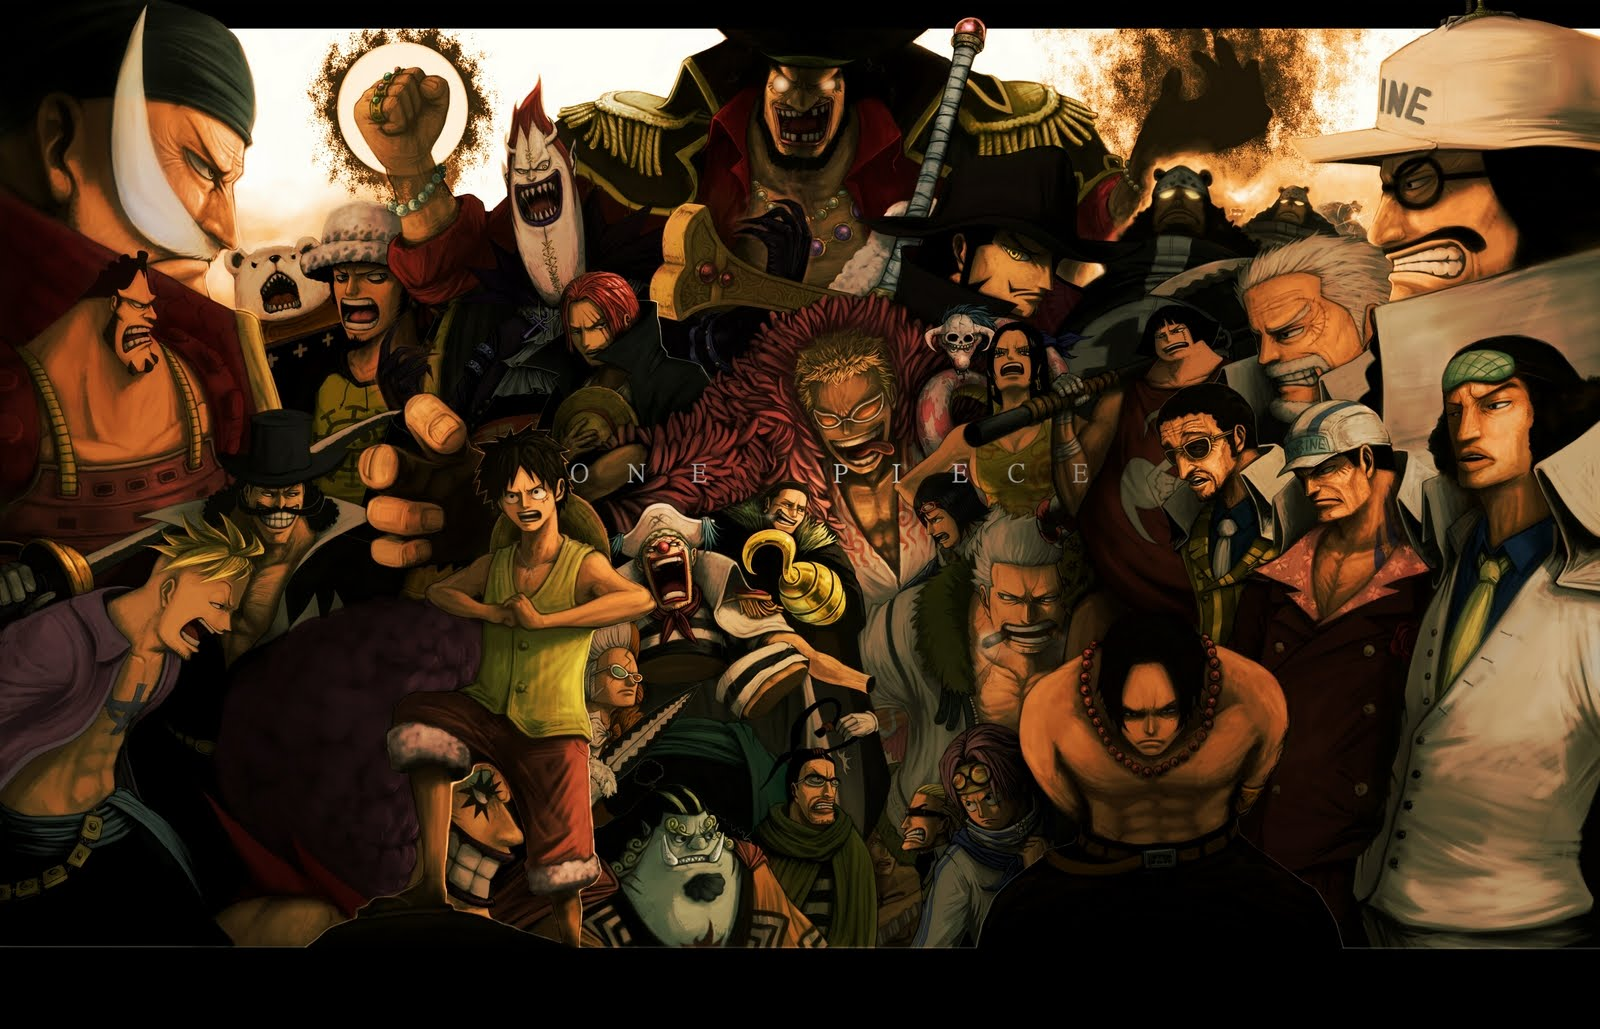 http://3.bp.blogspot.com/-6bJiBsXNY4A/UHkv2Yd2ReI/AAAAAAAAA9U/dGpAzTwT8EQ/s1600/One_Piece_Wallpaper_In_One_Piece_Anime_wallpapers_img_onepiece_img-onepiece.blogspot.com-%252310.jpg